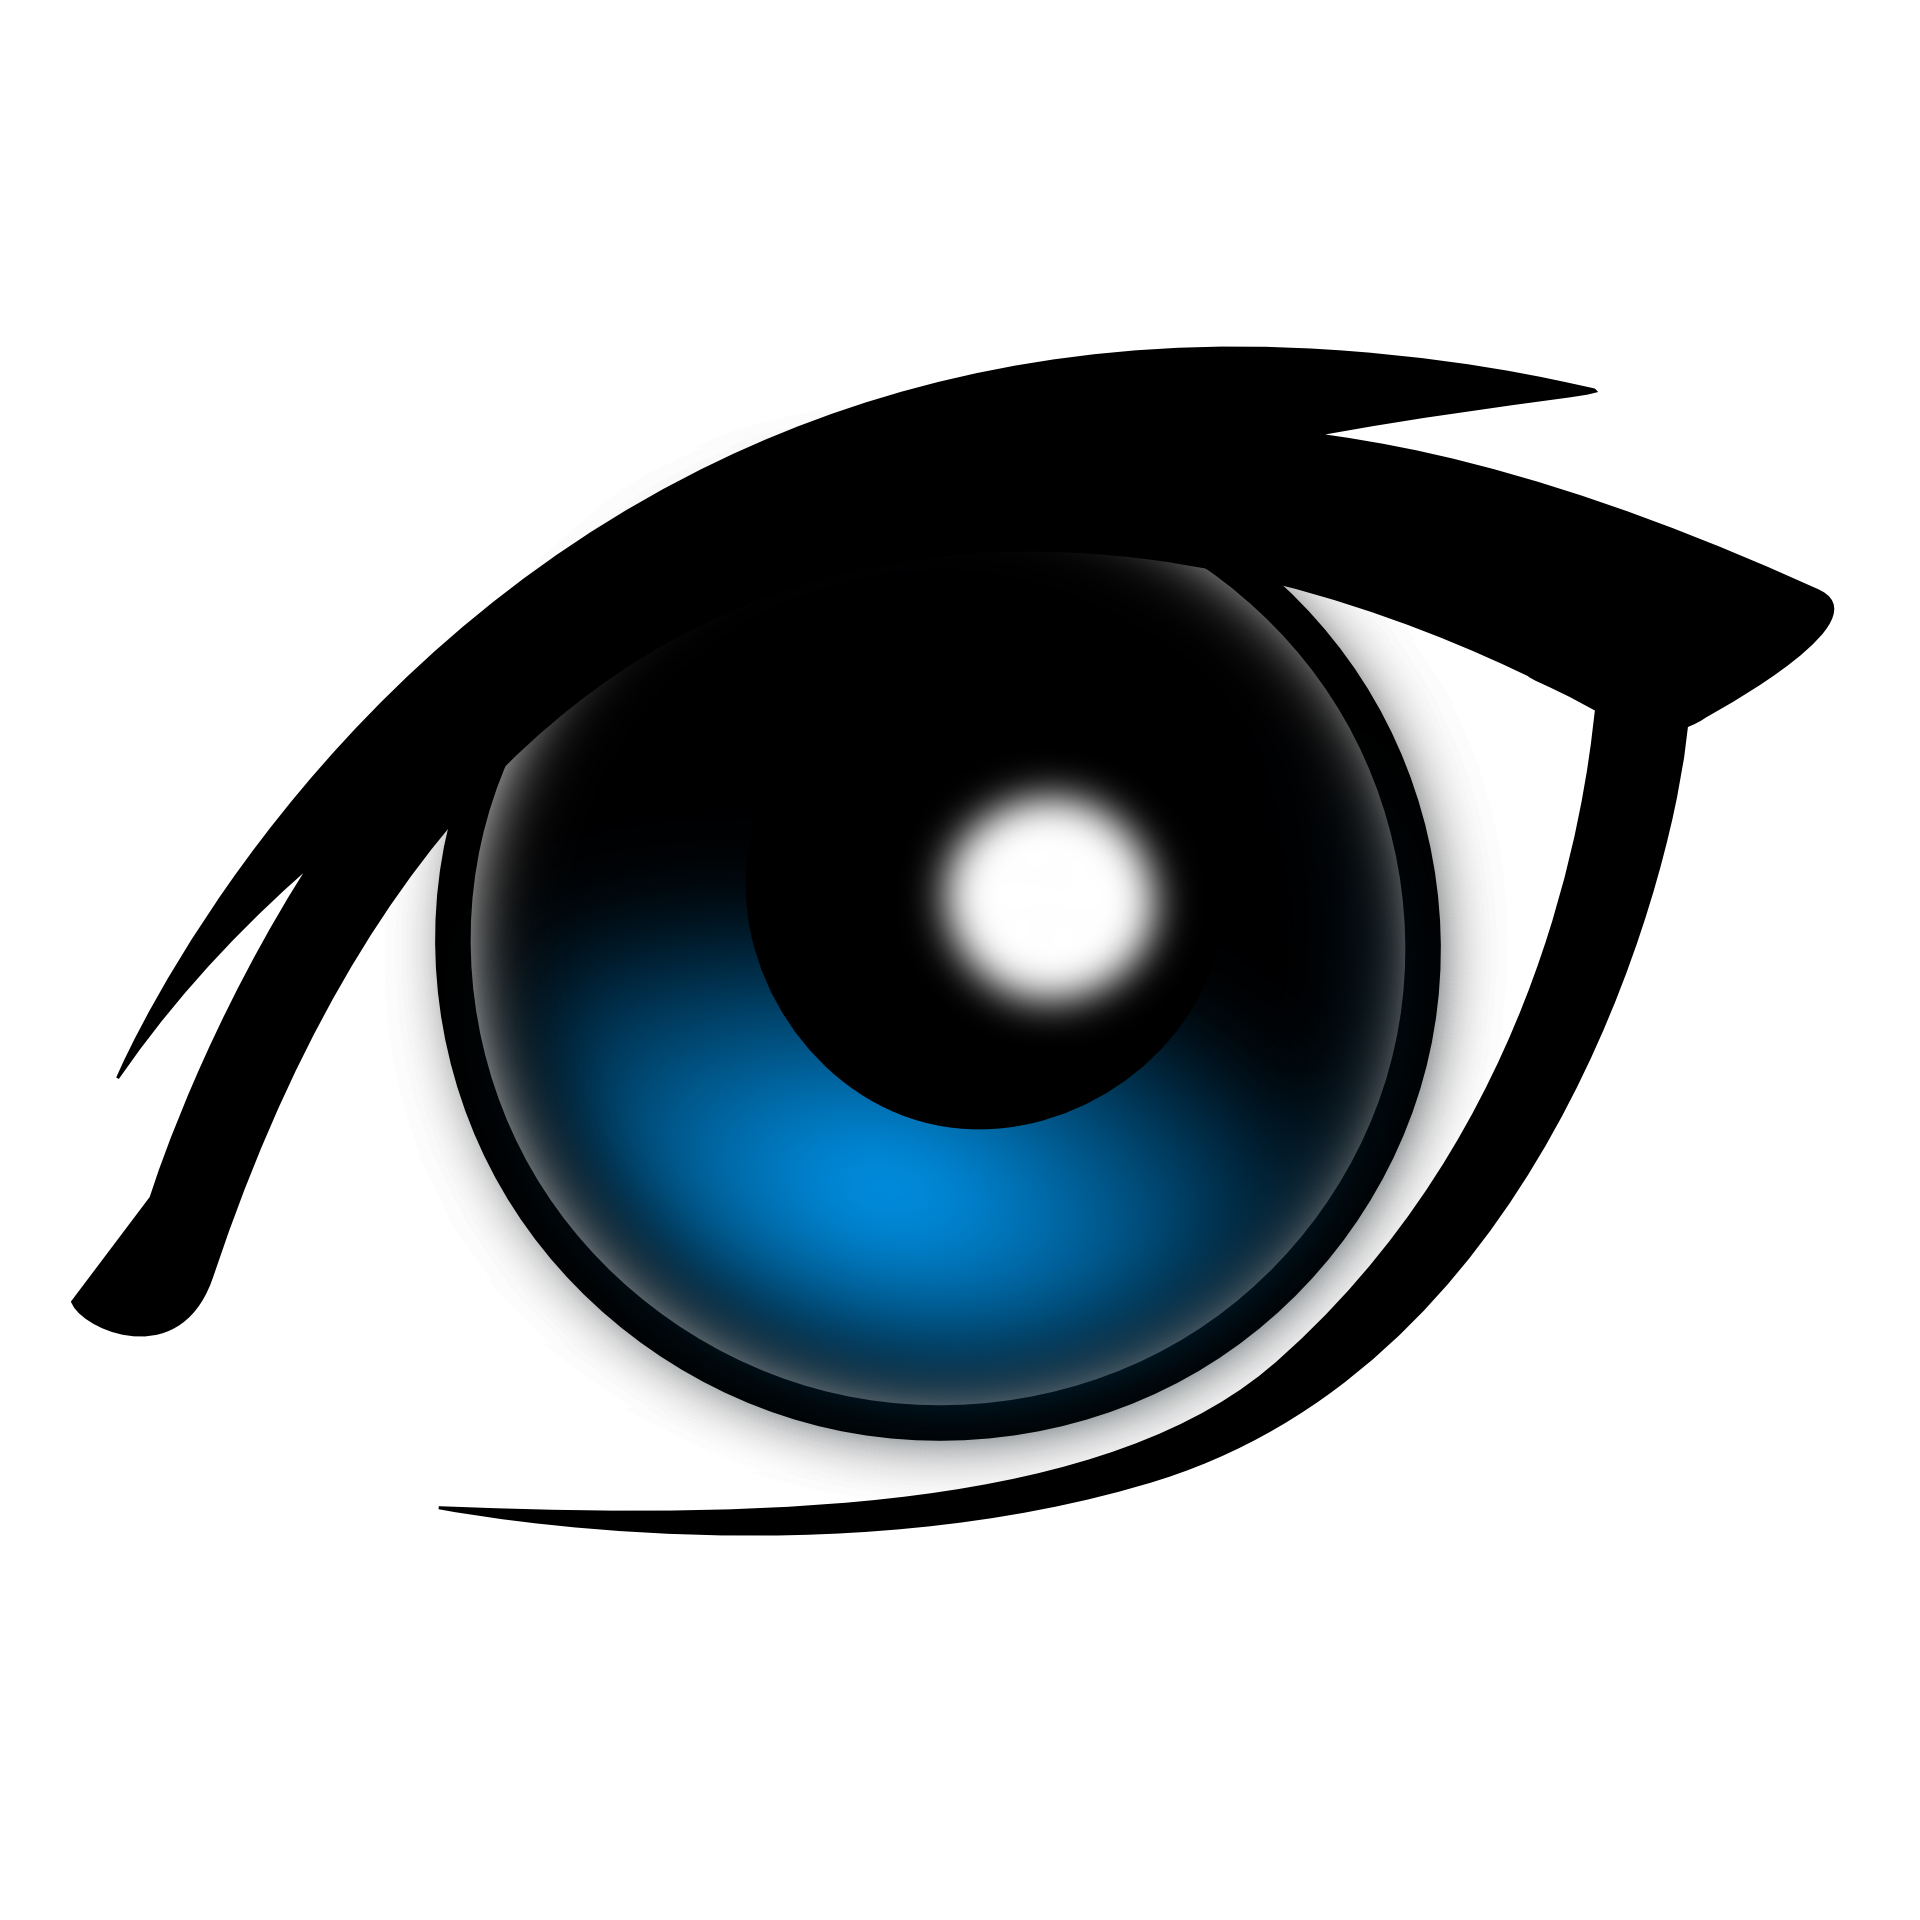 Cartoon eye vector